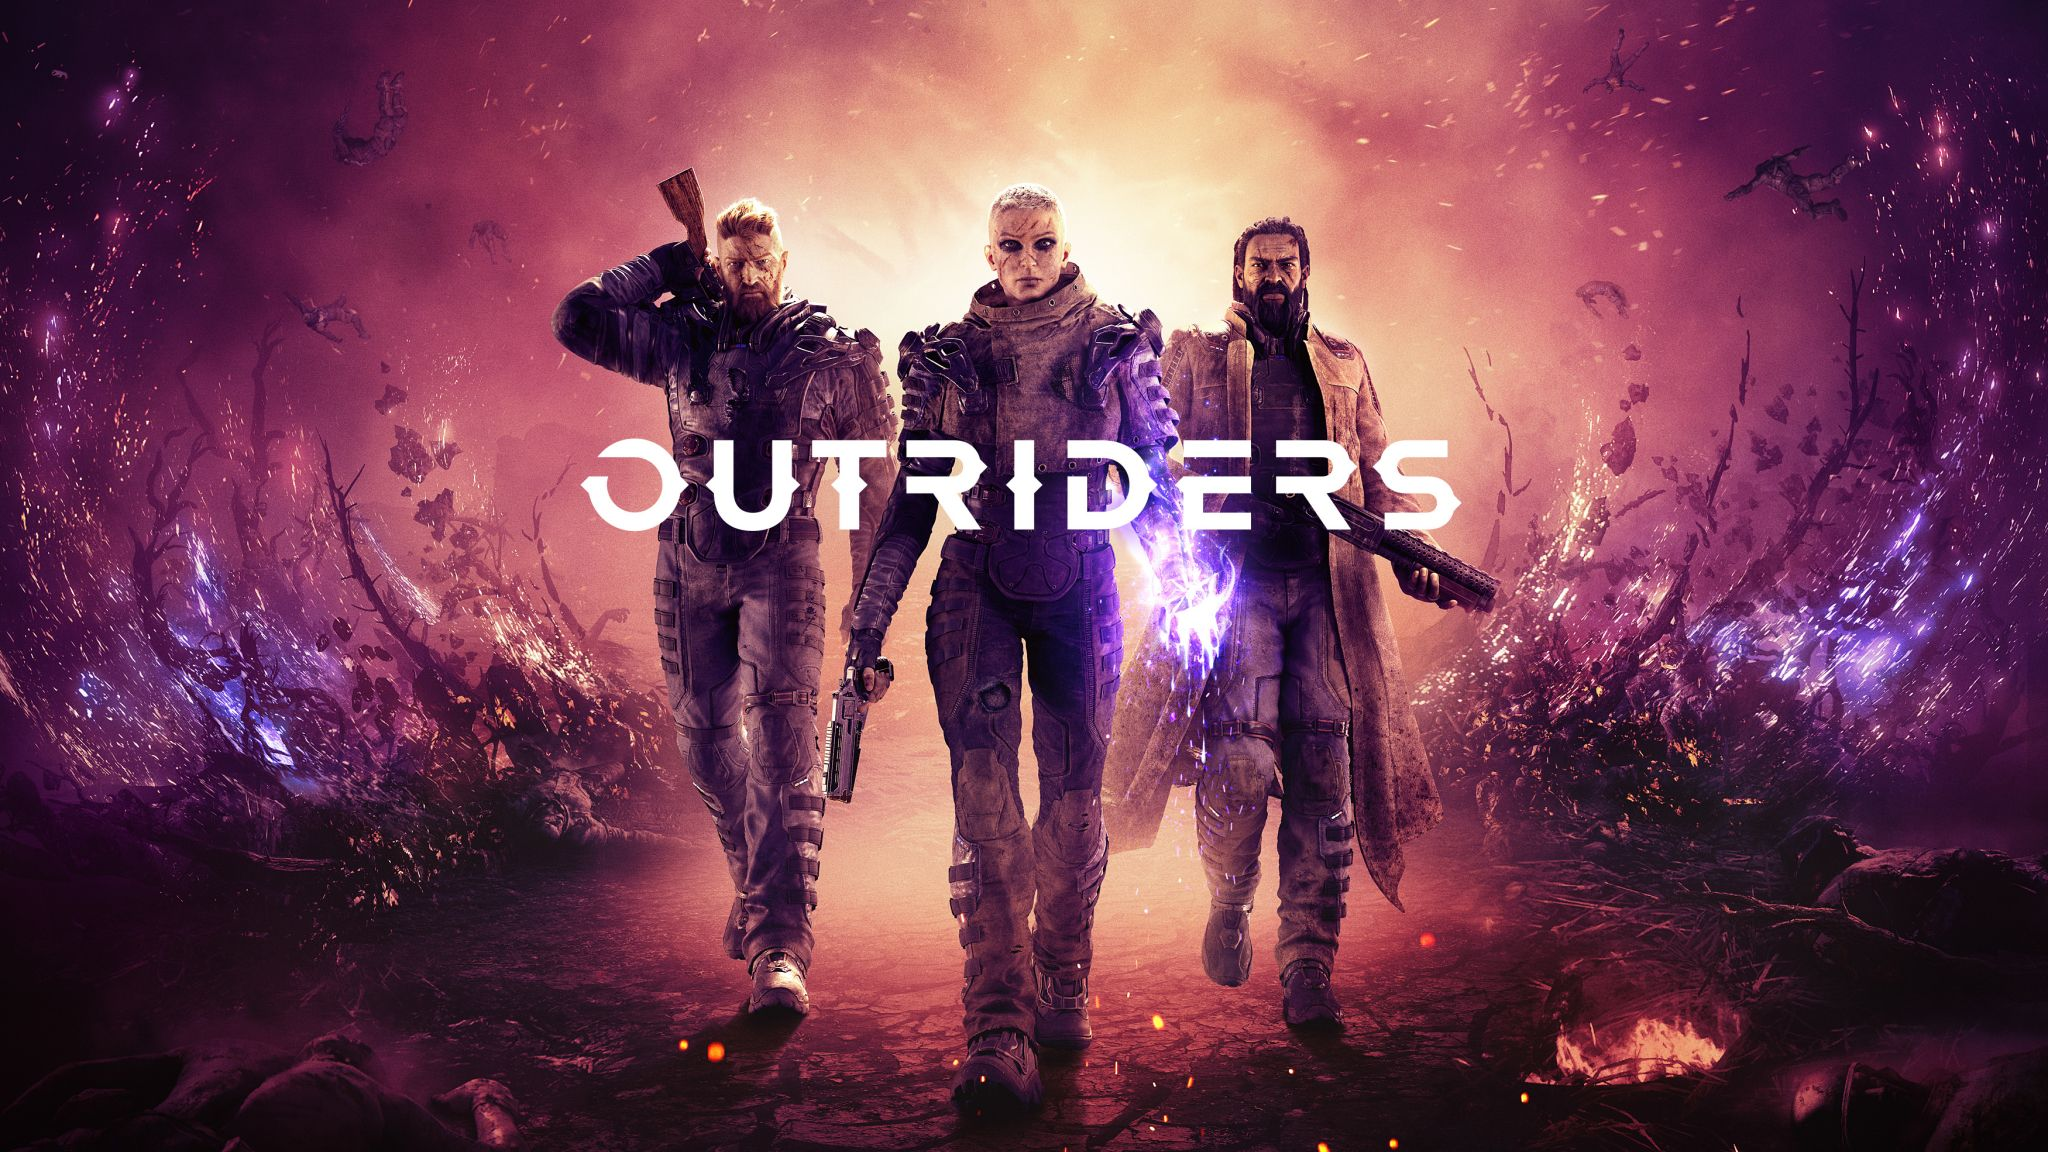 wp6897102-outriders-beyond-the-frontier-hd-wallpapers